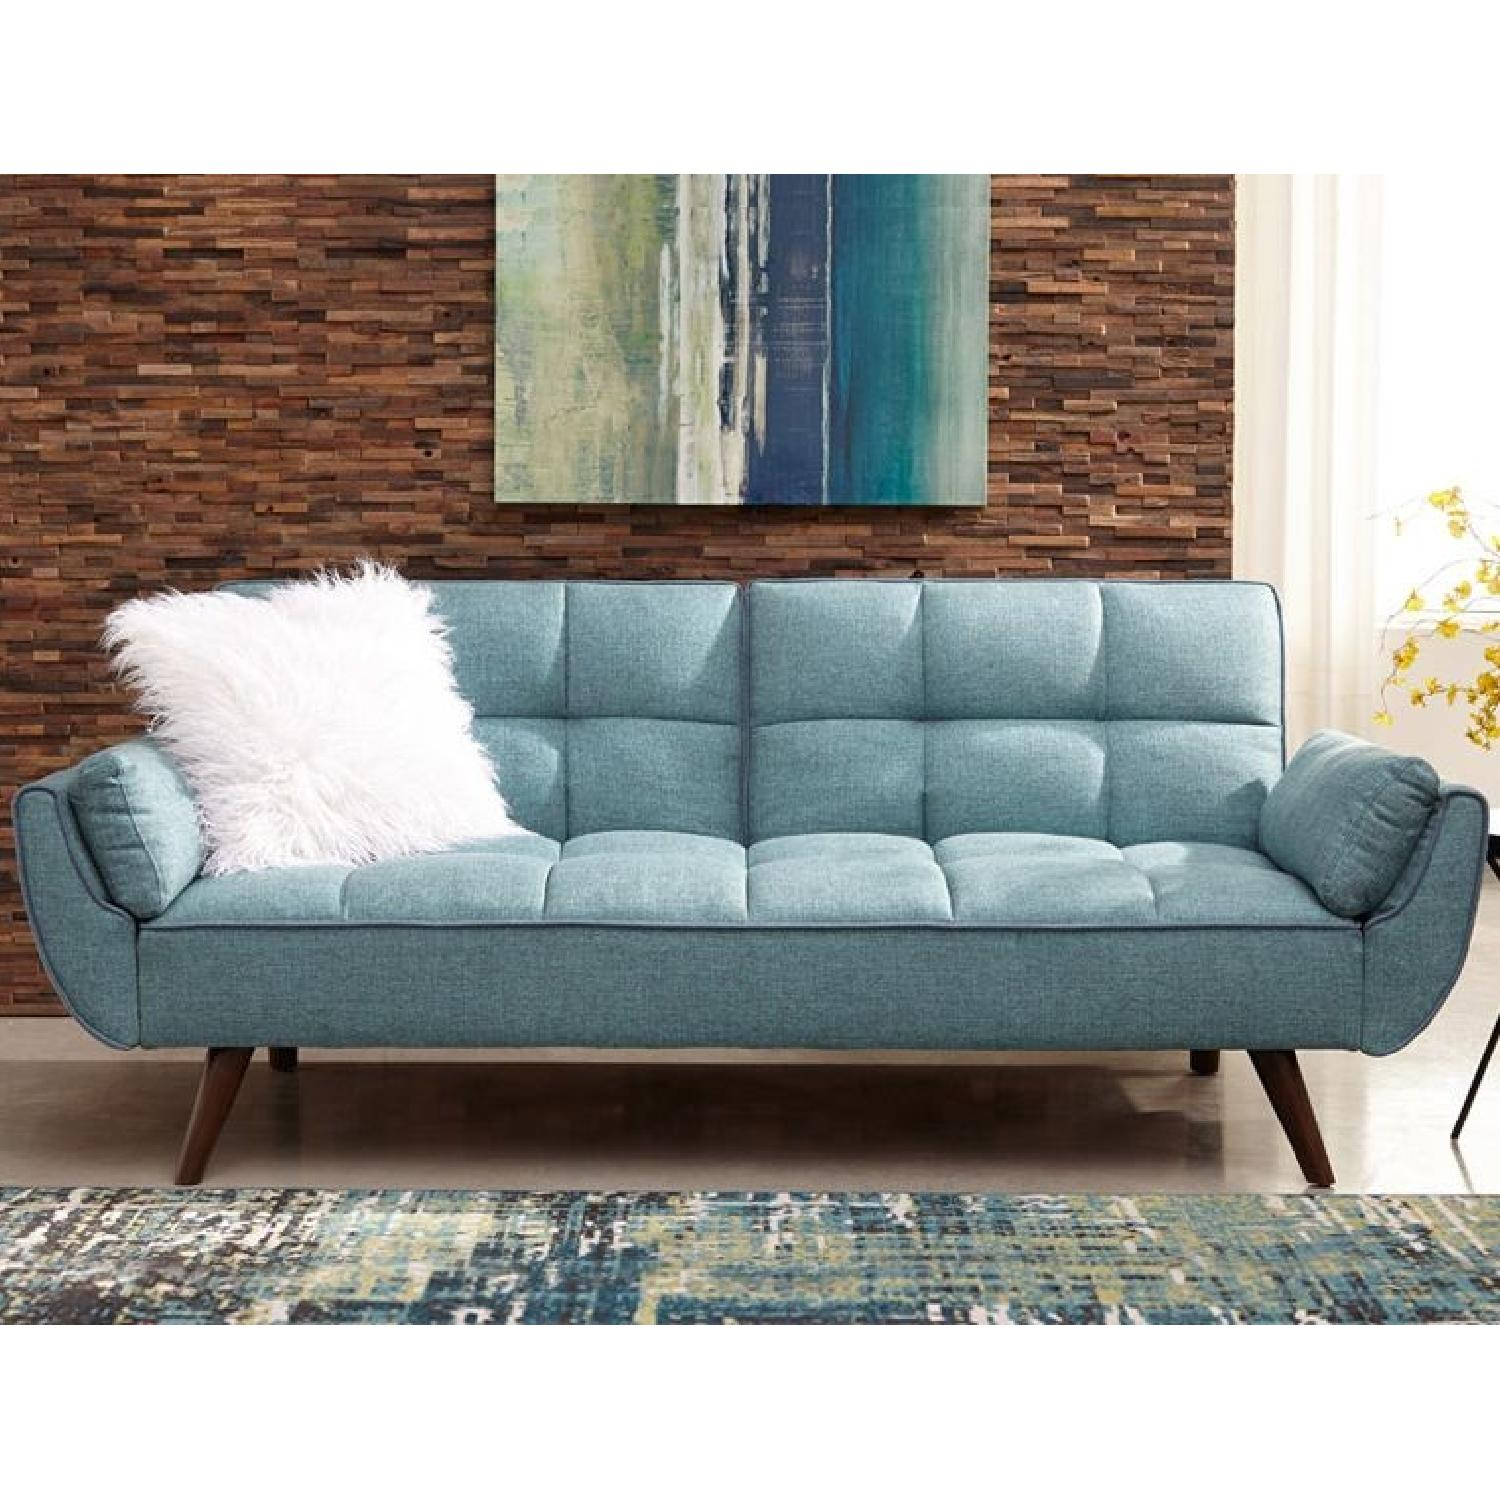 Light Turquoise Blue Sofa Bed